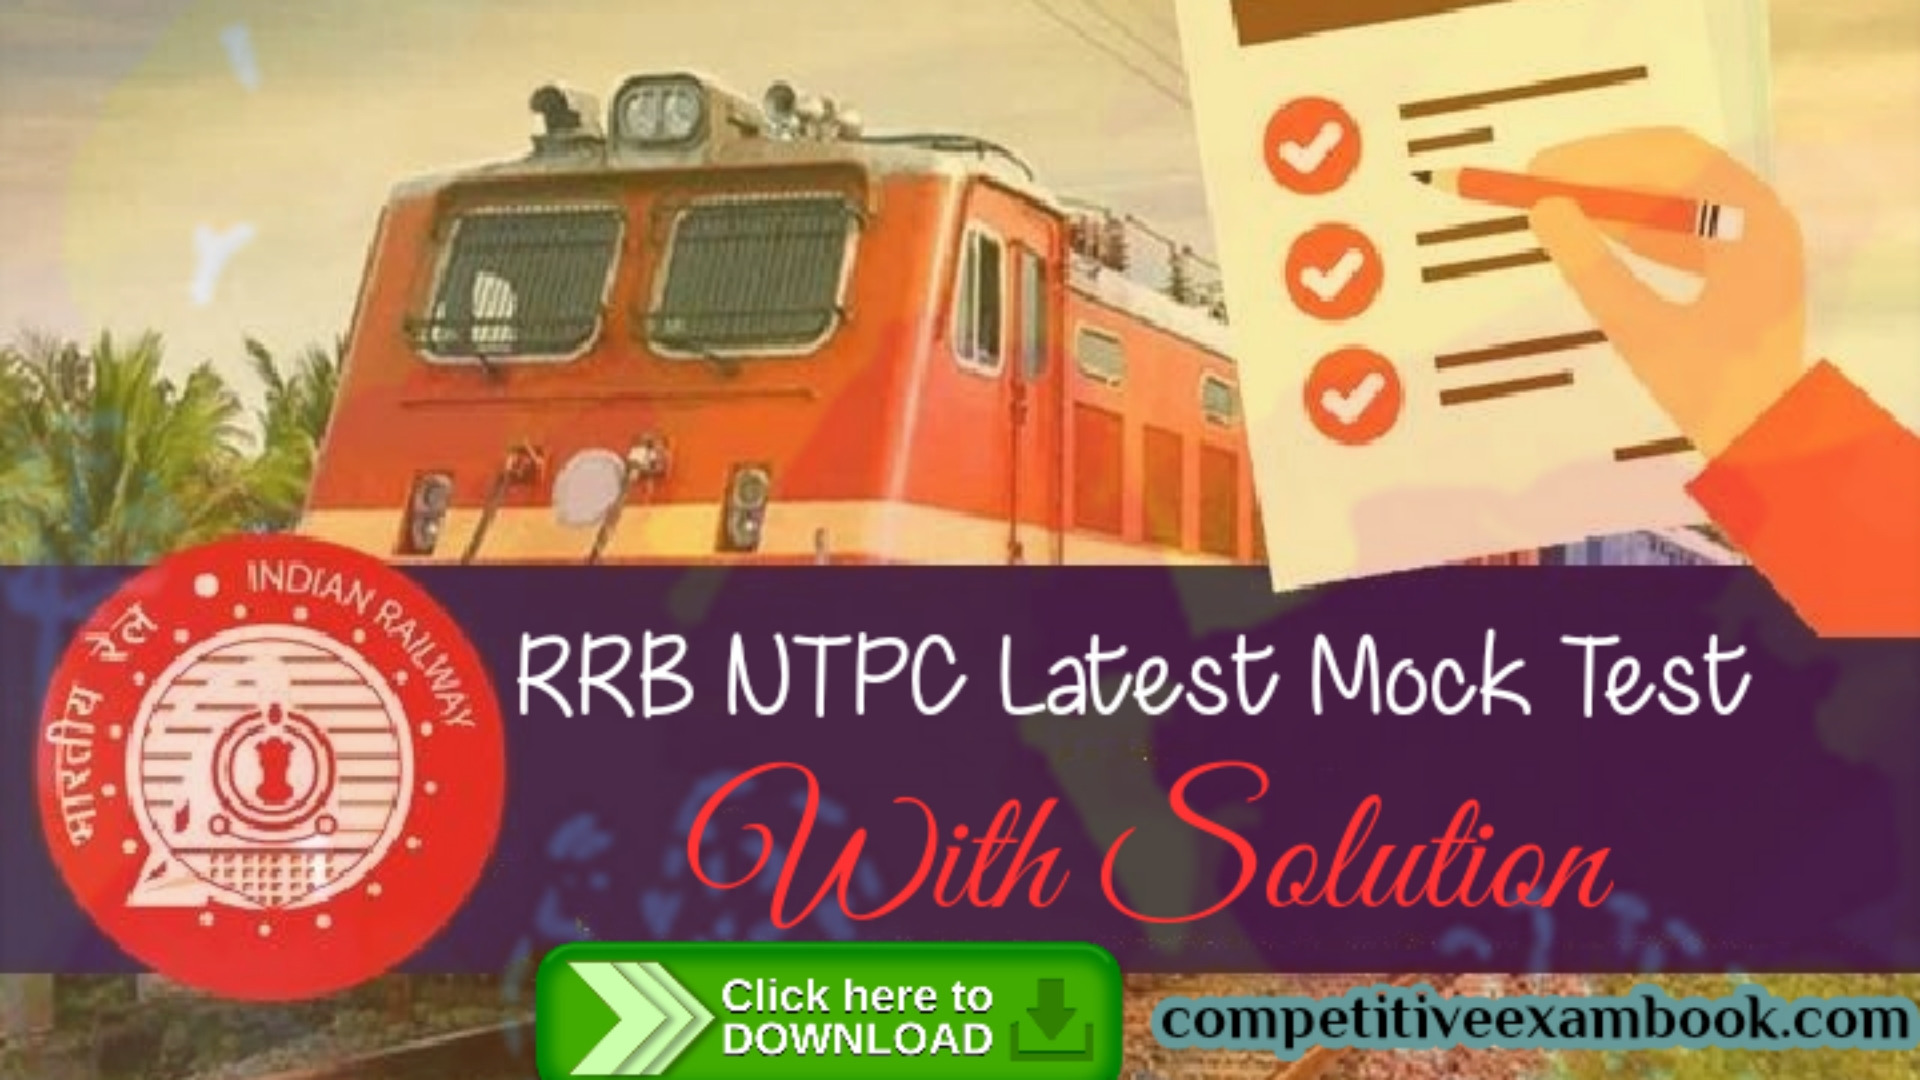 RRB NTPC Question Papers [with solutions] - Download RRB NTPC